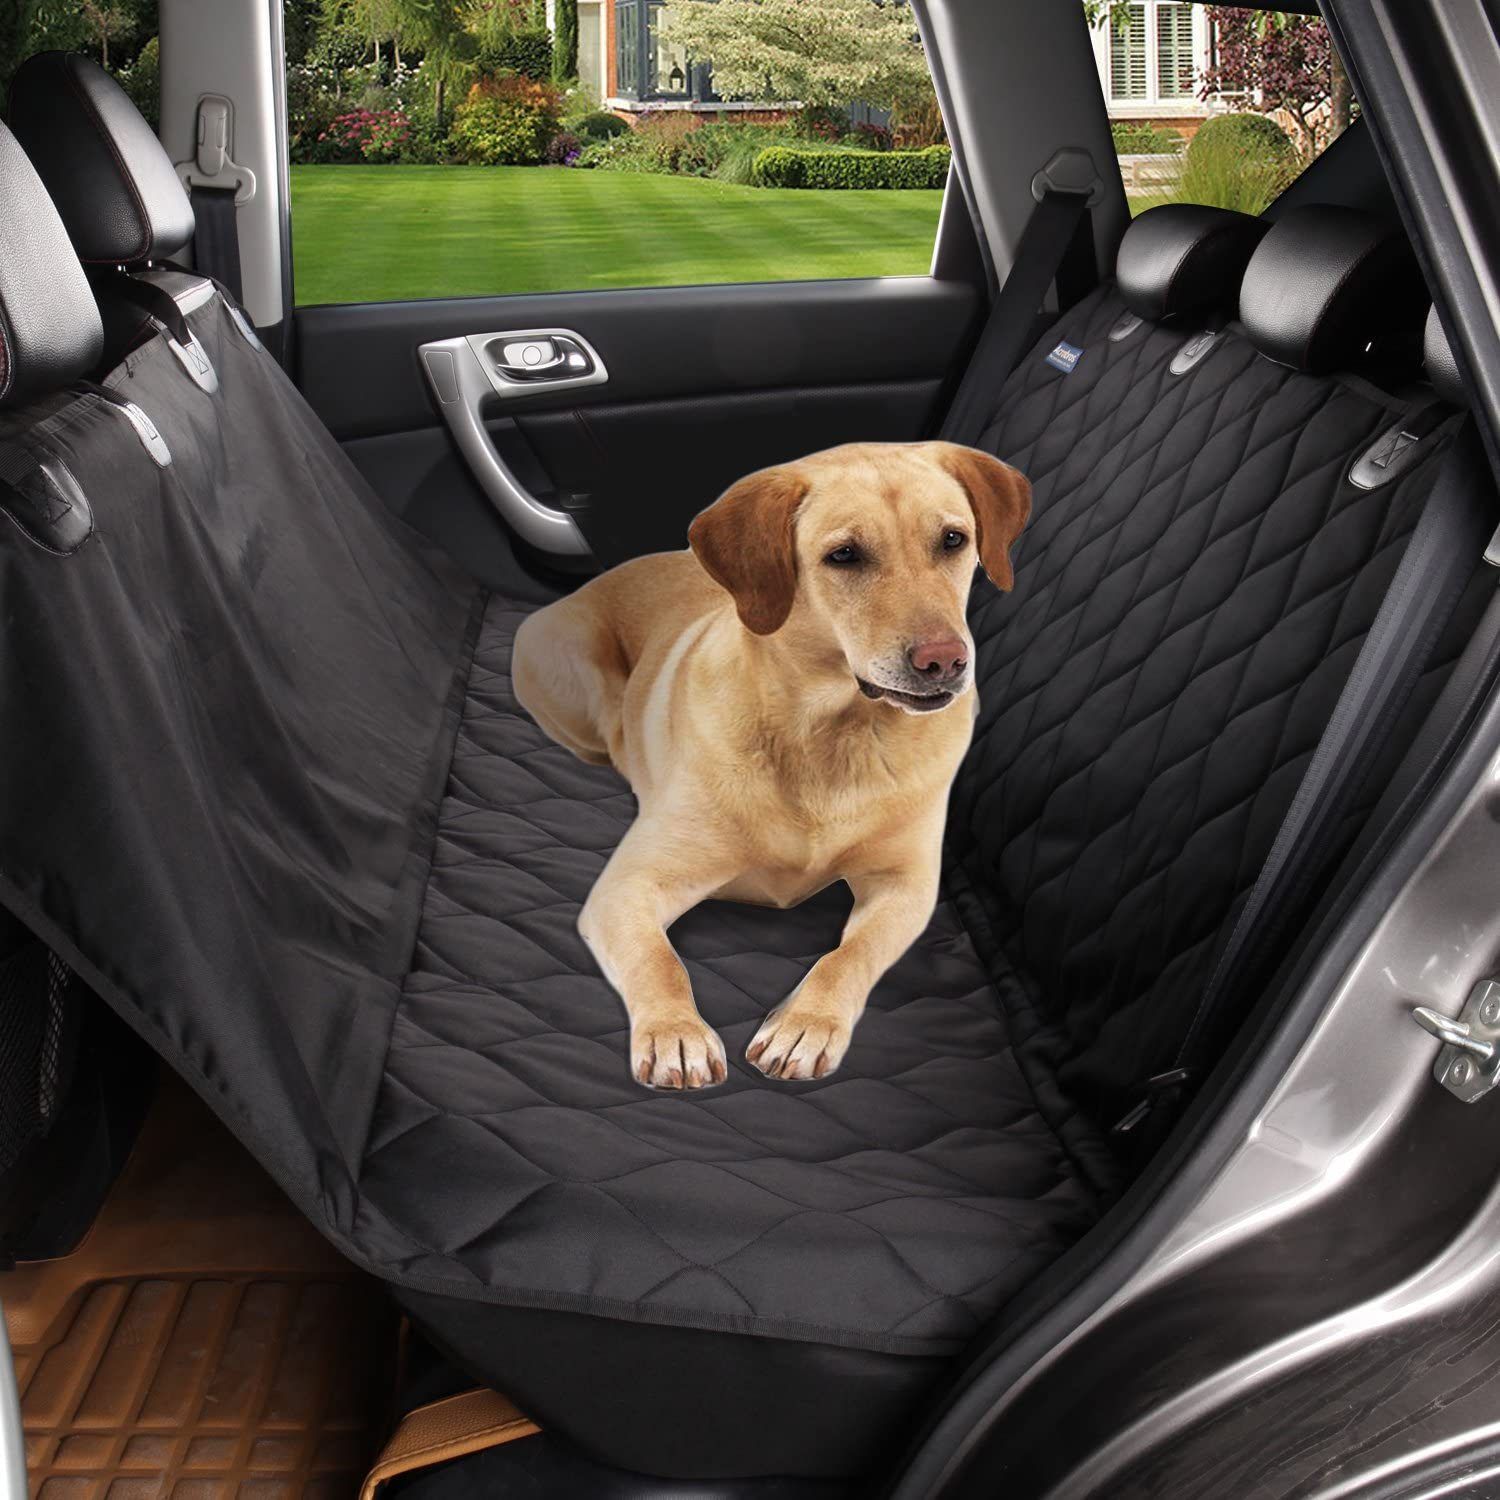 acelitor Deluxe Dog Seat Covers for Cars,Dog Car Seat Hammock Convertible,Universal Fit,Extra Side Flaps,Exclusive Nonslip,Waterproof Padded Quilted,Black01